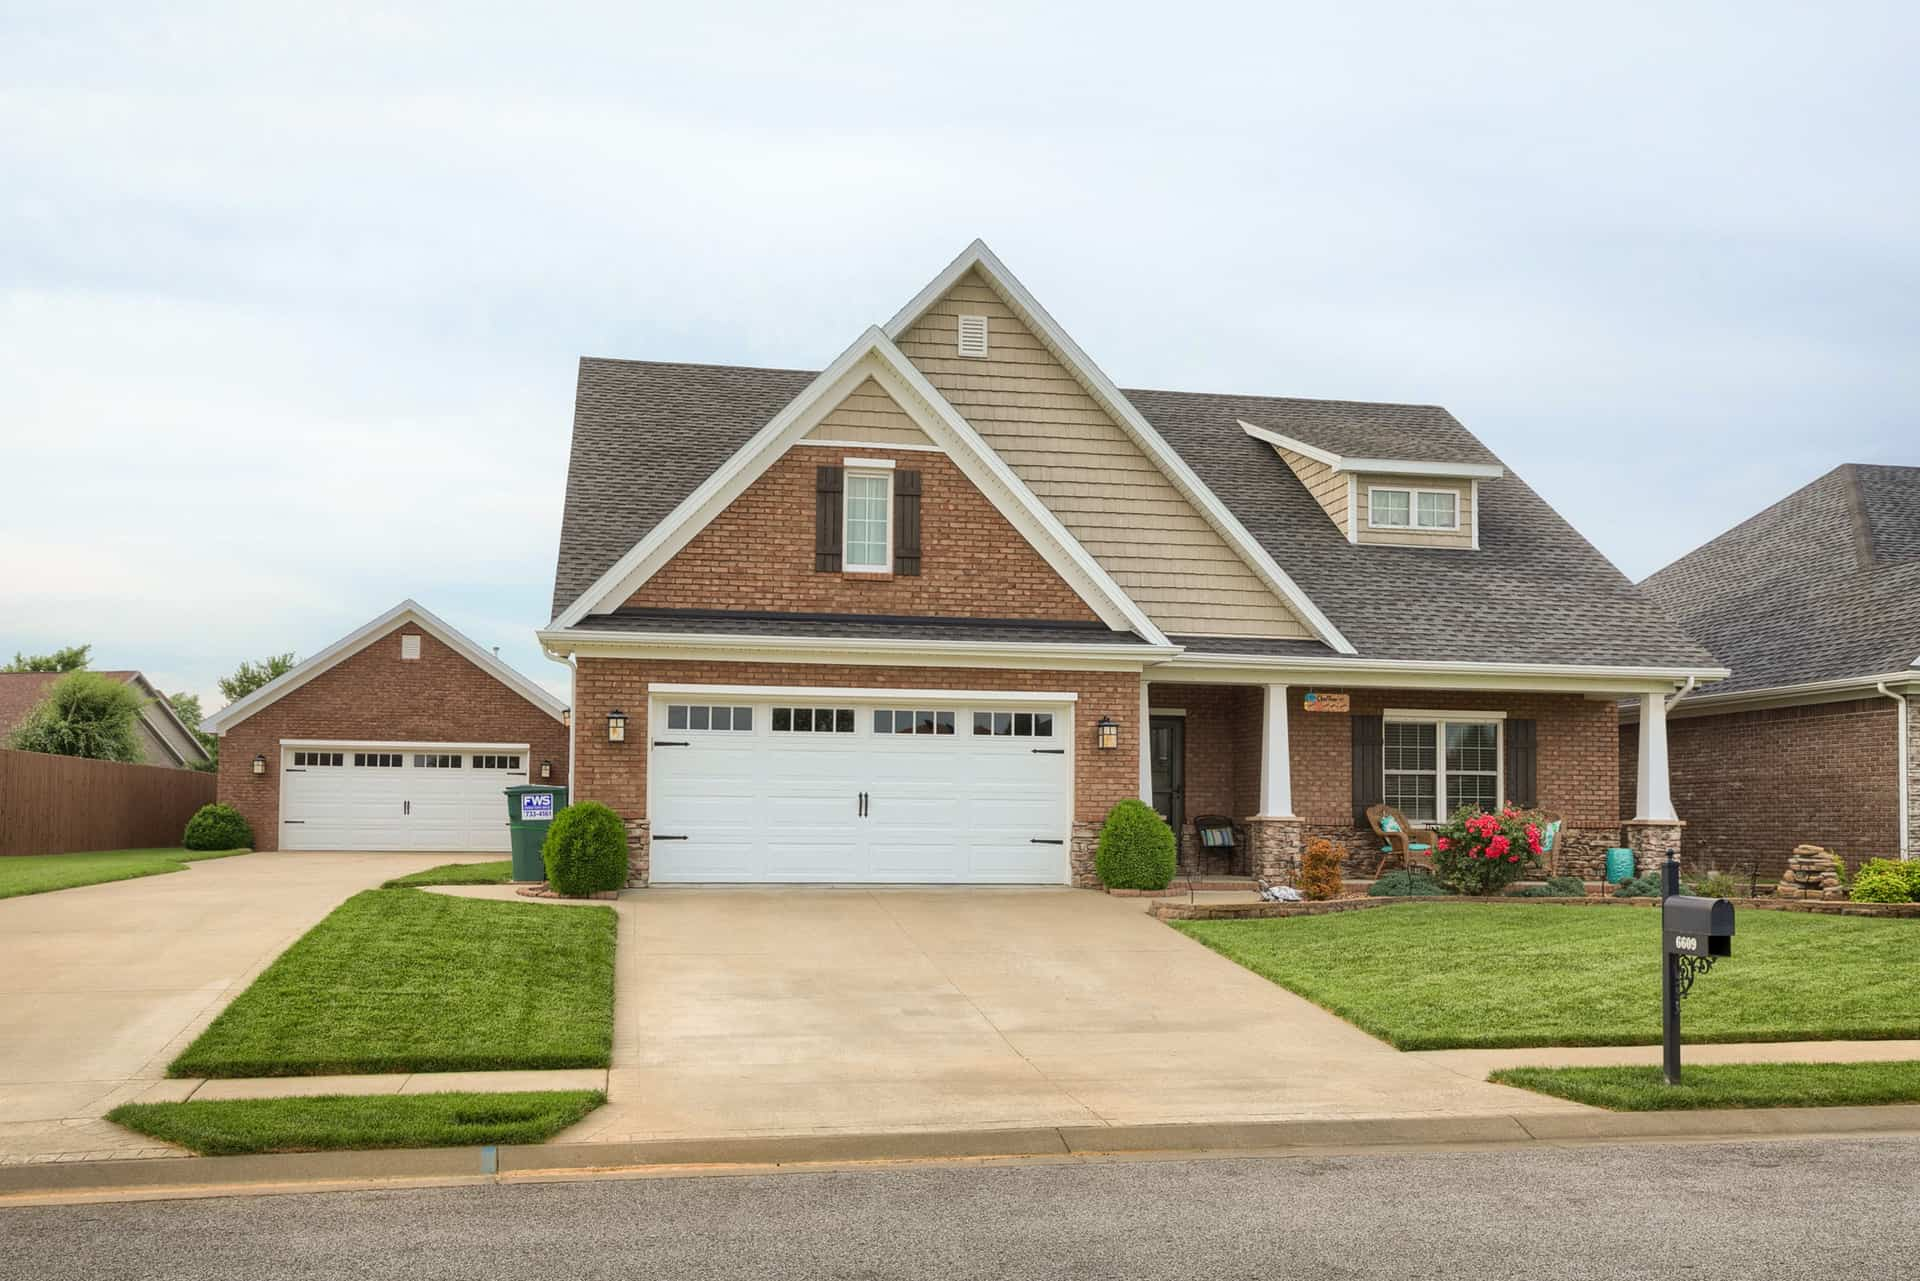 6609 Spring Haven Trace, Owensboro, KY 42301